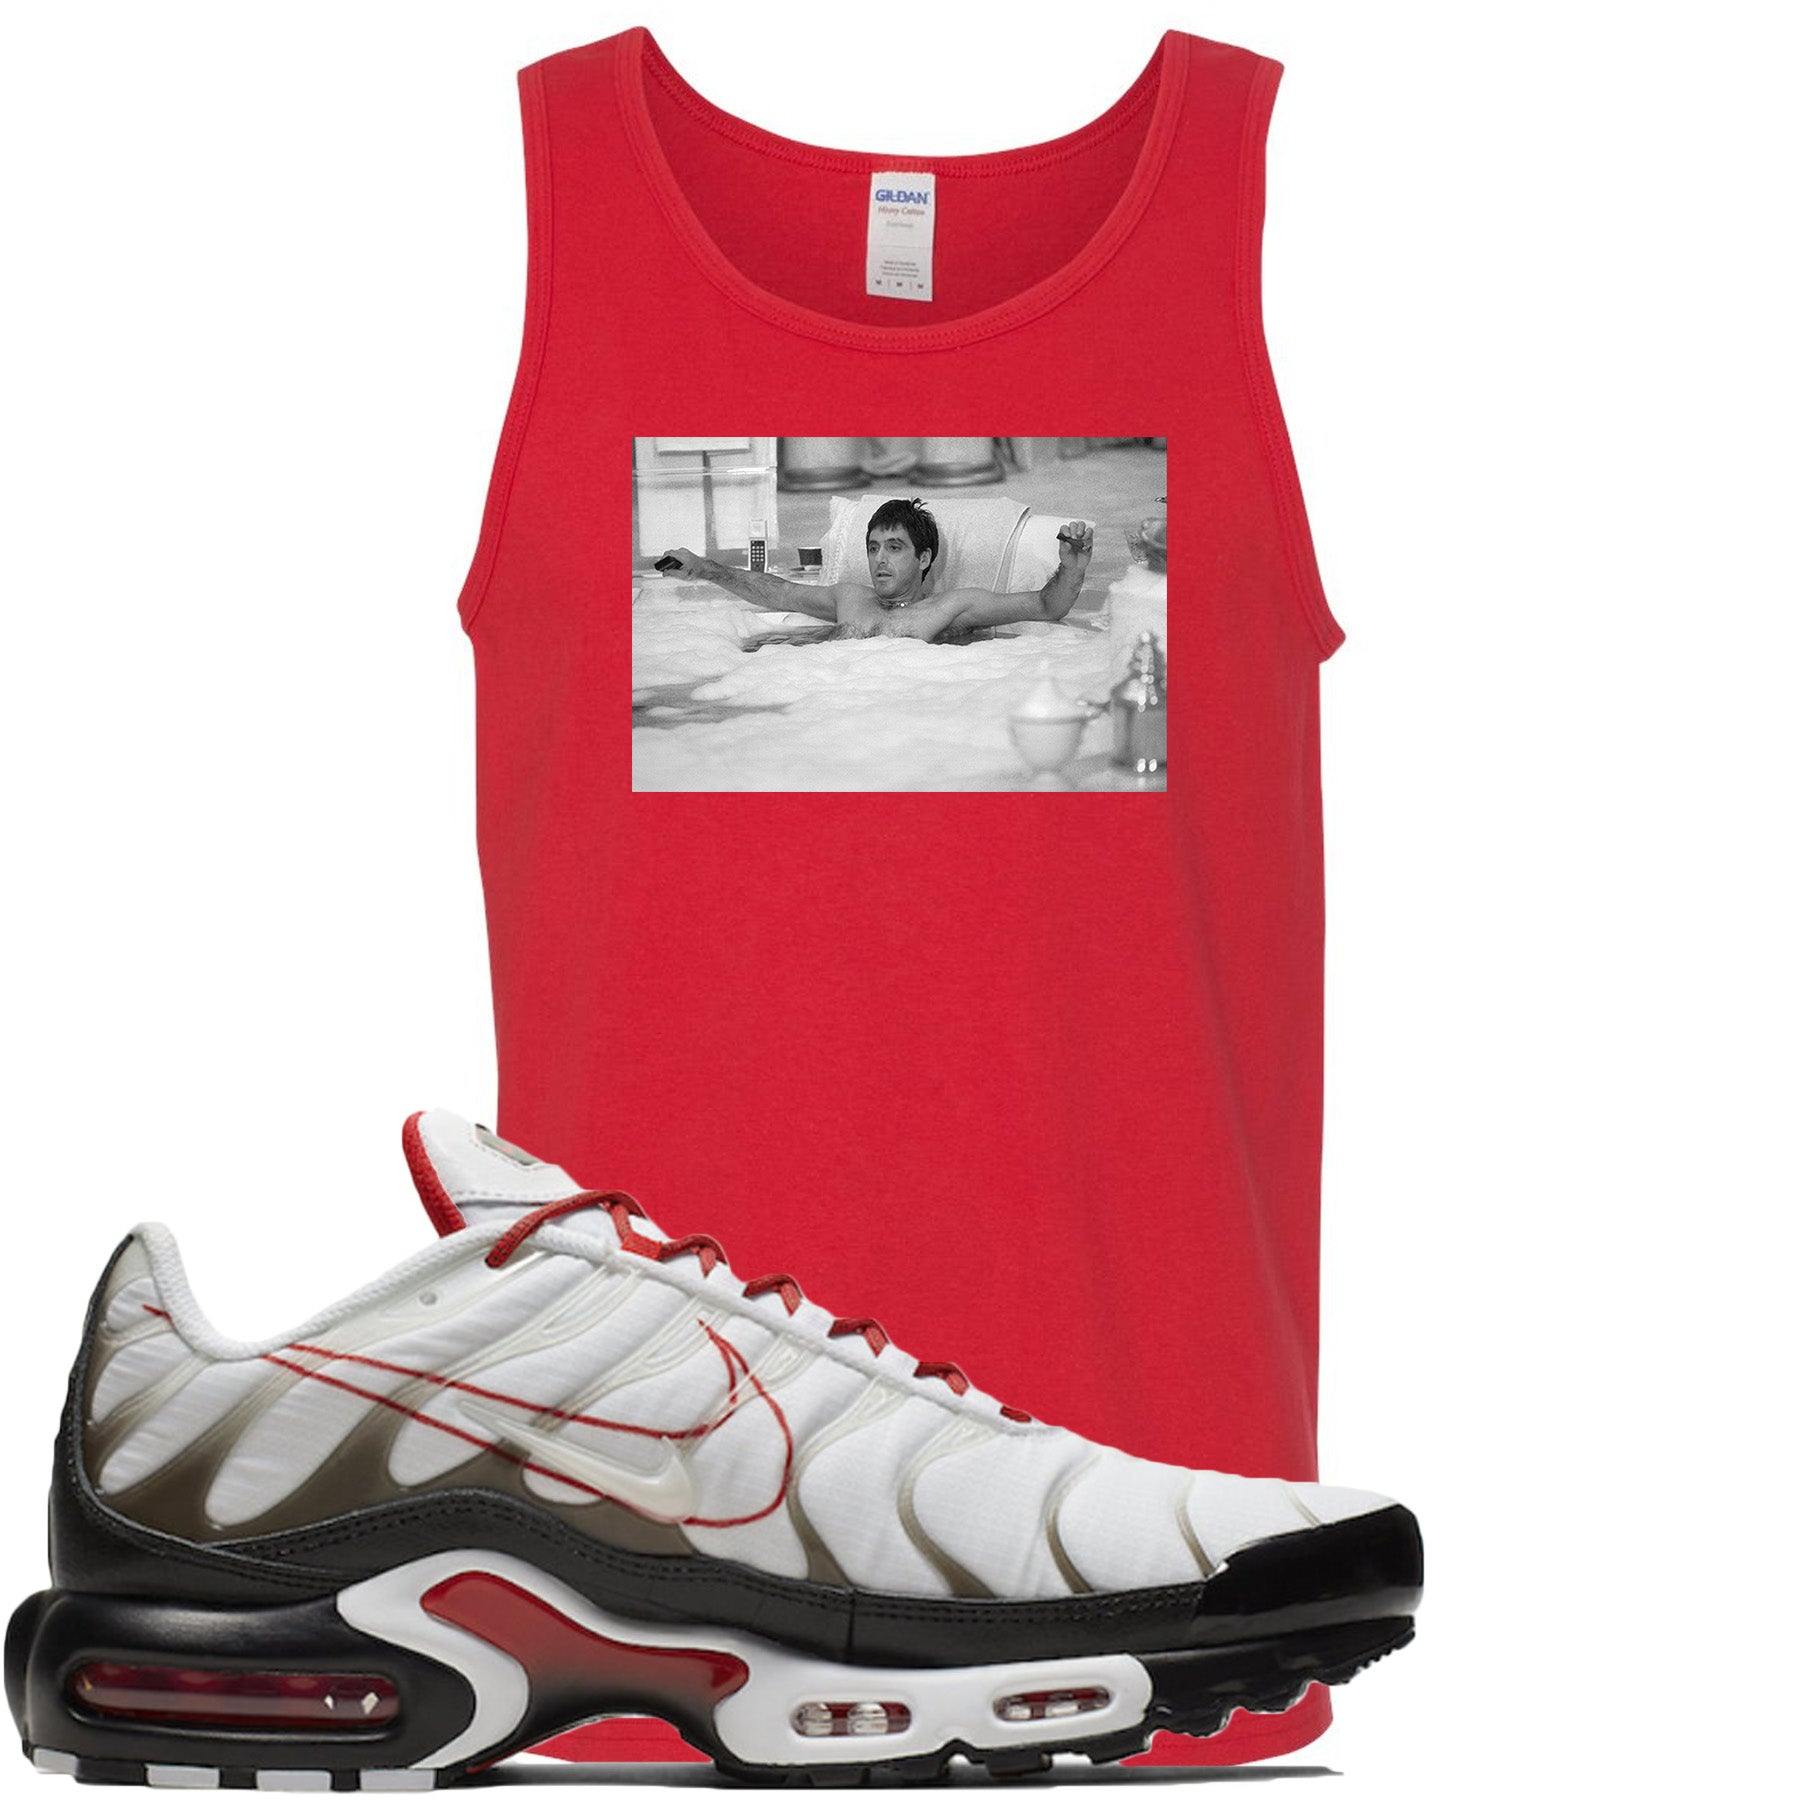 factory authentic e2123 3d656 Nike Air Max Plus White University Red Sneaker Match Bathtub Scarface Red  Mens Tank Top